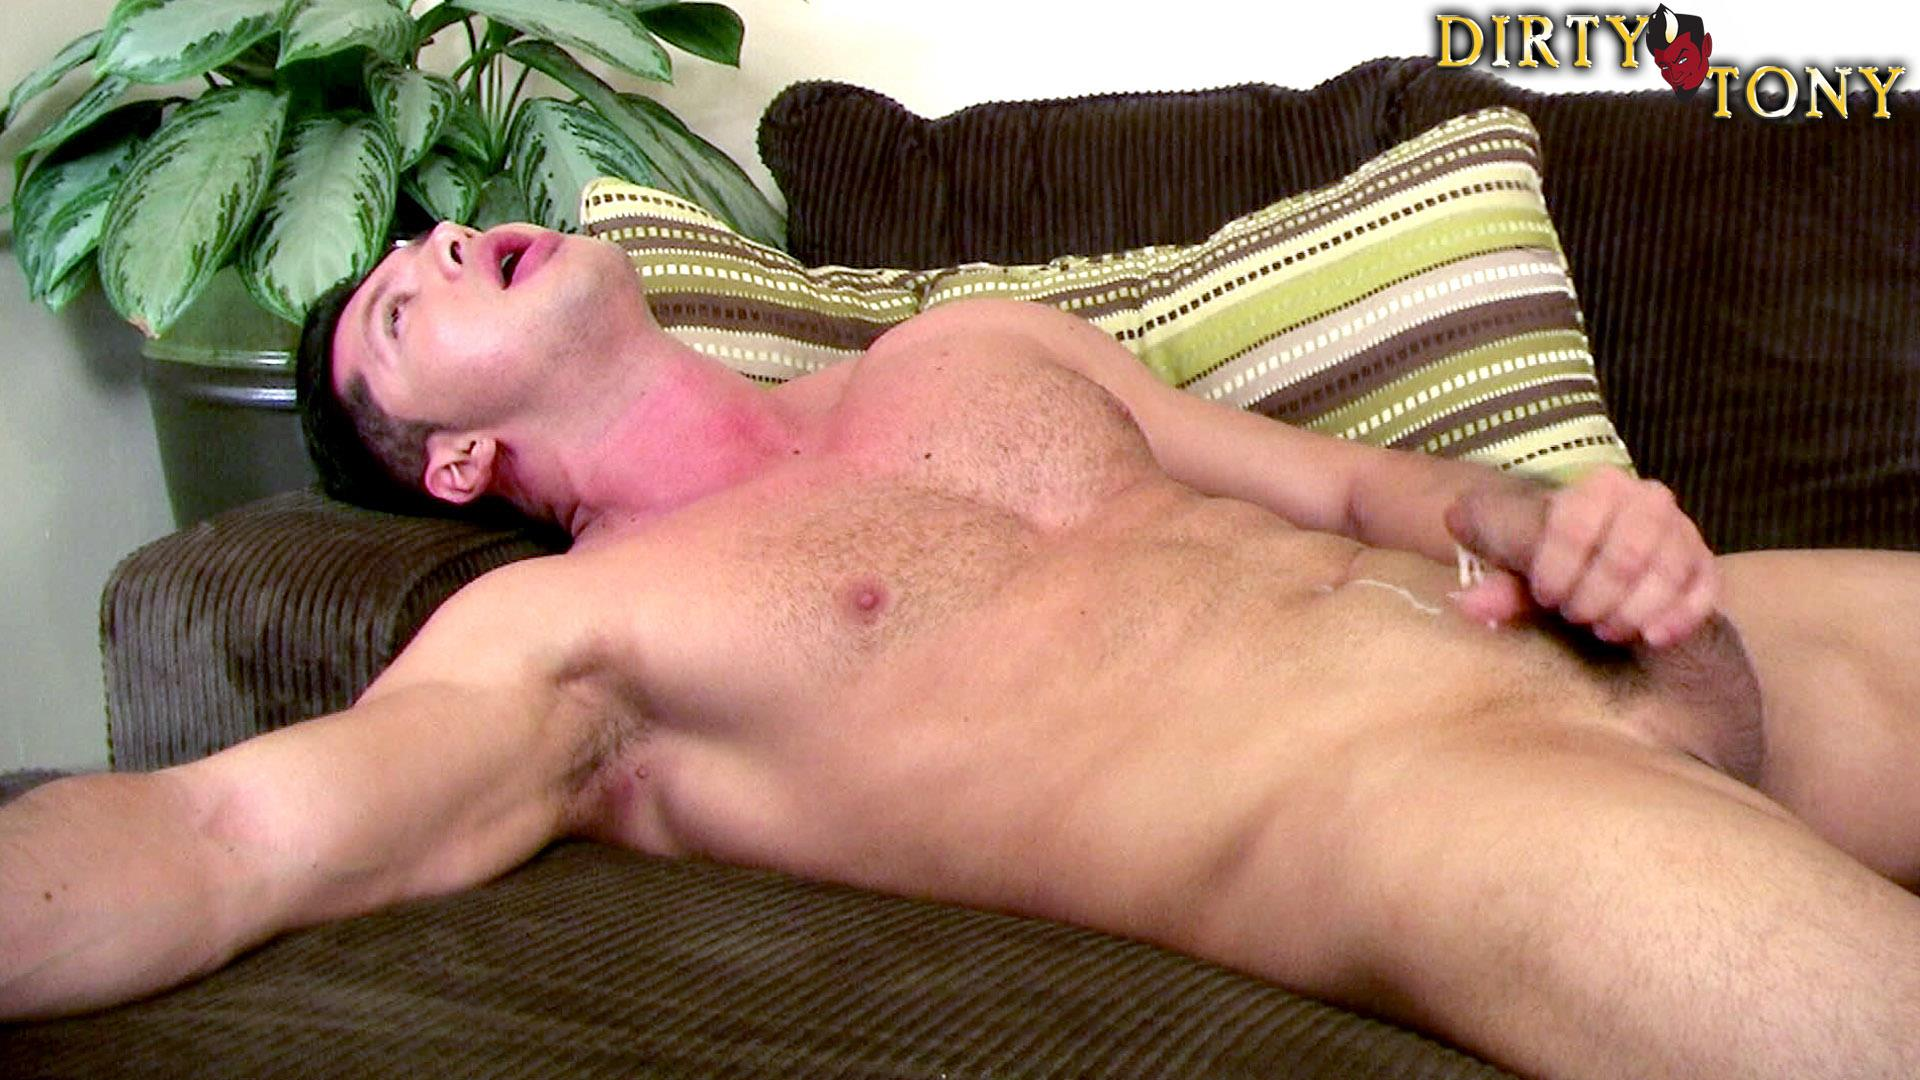 Dirty-Tony-LIAM-SANTIAGO-Straight-Muscle-Latino-Jerking-Off-Big-Uncut-Cock-Amateur-Gay-Porn-15 Straight Hairy Muscle Latino Auditions For Gay Porn With A Big Uncut Cock